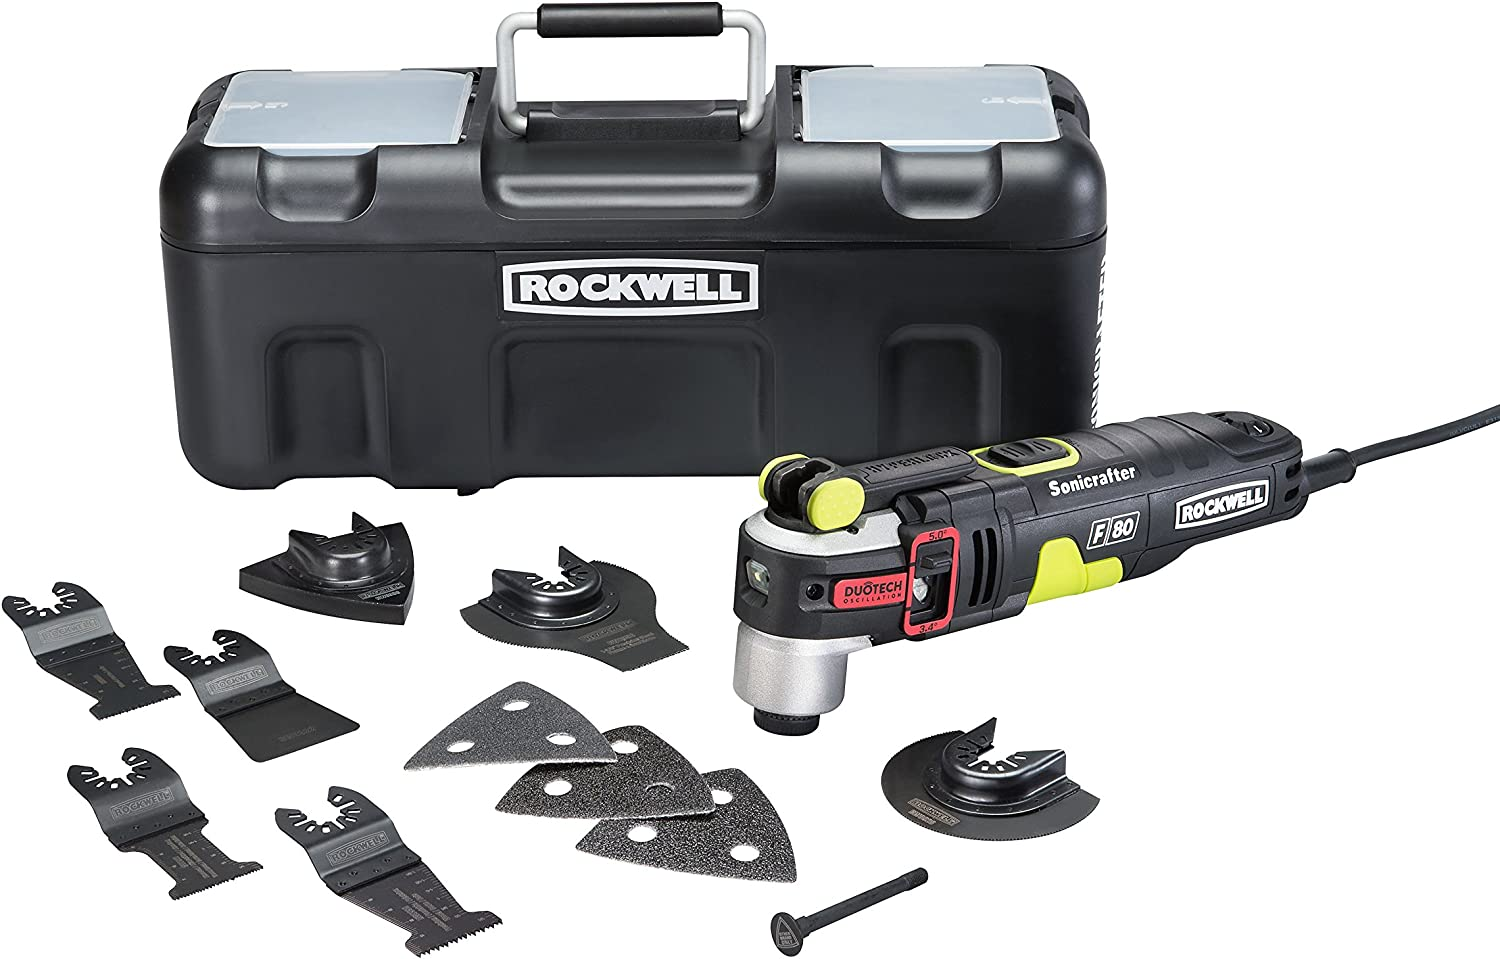 3. Rockwell RK5151K 4.2-Amp Sonicrafter F80 Oscillating Multi-Tool